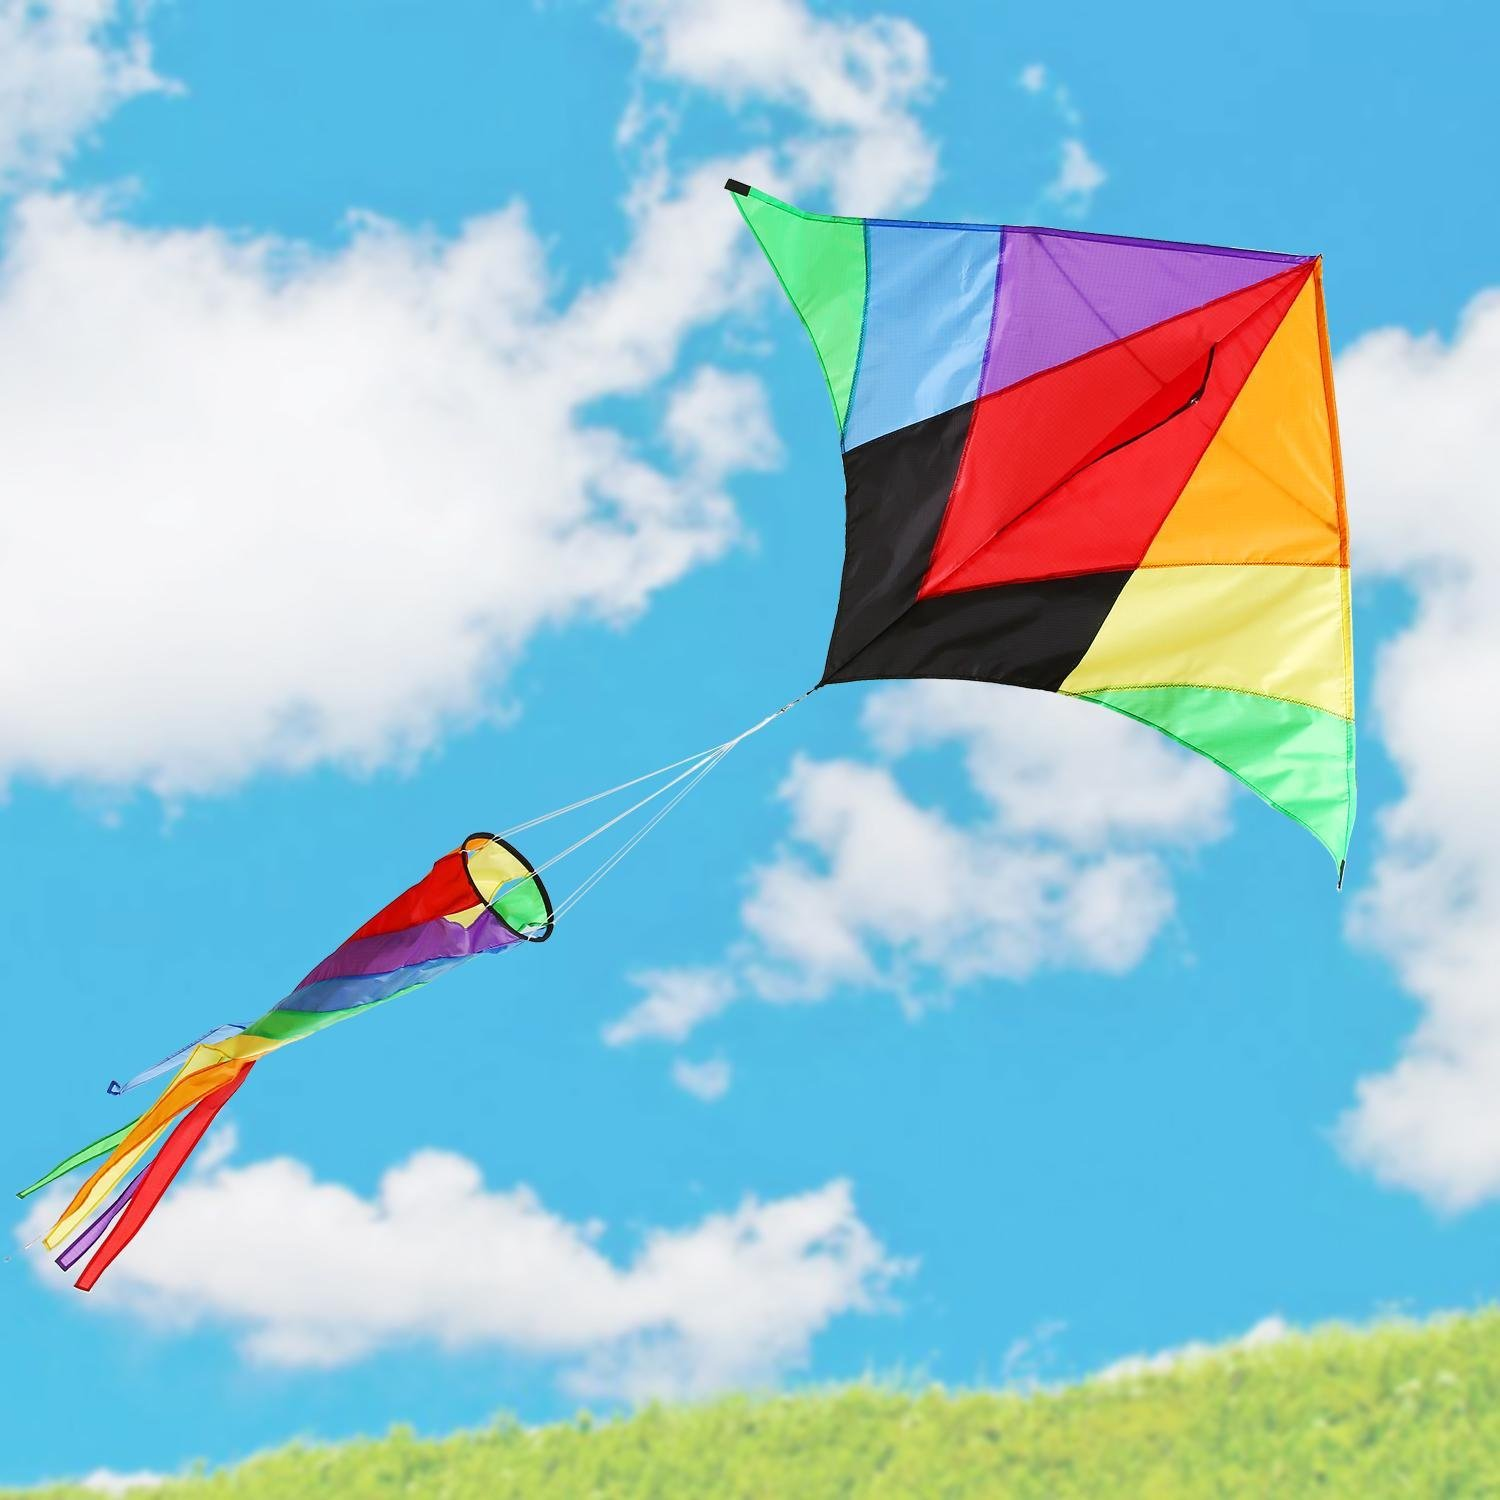 Dtemple Colorful Kite, Rainbow Kite/ Rainbow Delta Kite - Easy to Assemble, Launch, Fly - with Spinning Tail for Kids 3+ (US STOCK) by Dtemple